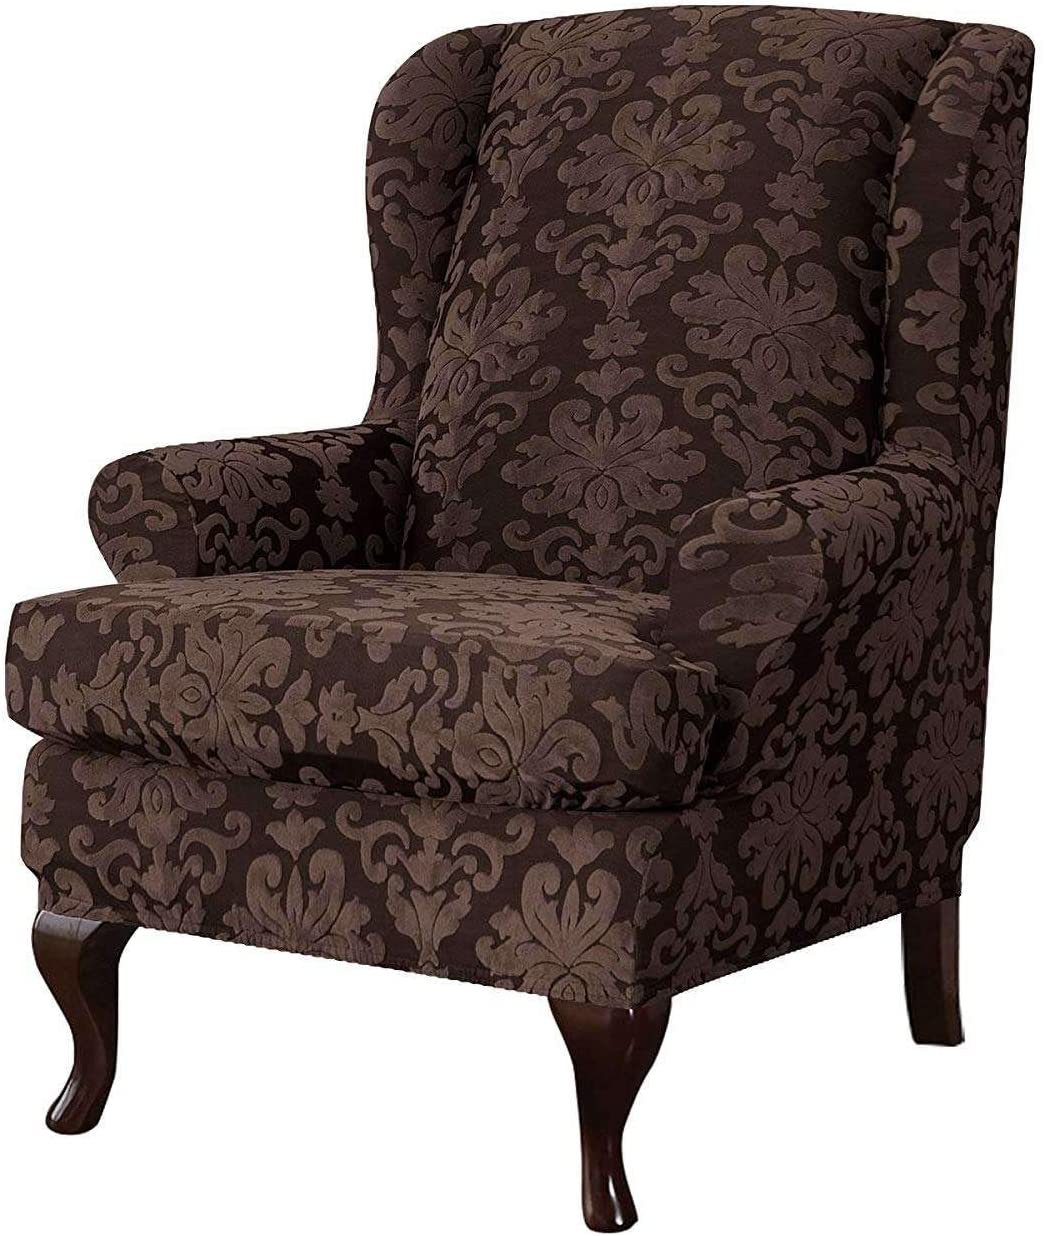 MO&SU Stretch Wingback Chair Sofa Slipcover, 2-Pieces Jacquard Sofa Cover Wing Chair Furniture Protector Couch Covers for Wing Back Armchair-(Sofa Cover+Cushion Cover)-Deep Coffee